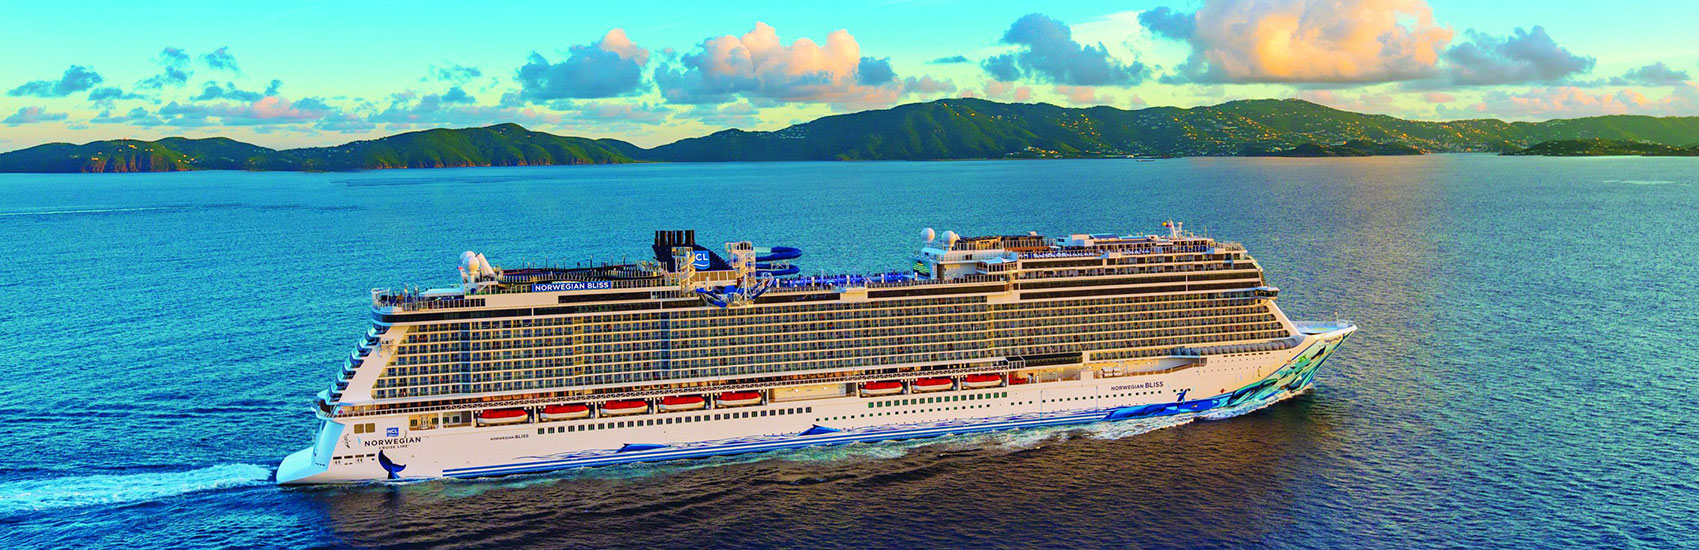 Love All Inclusives? 9 Reasons Why You Should Try Cruising